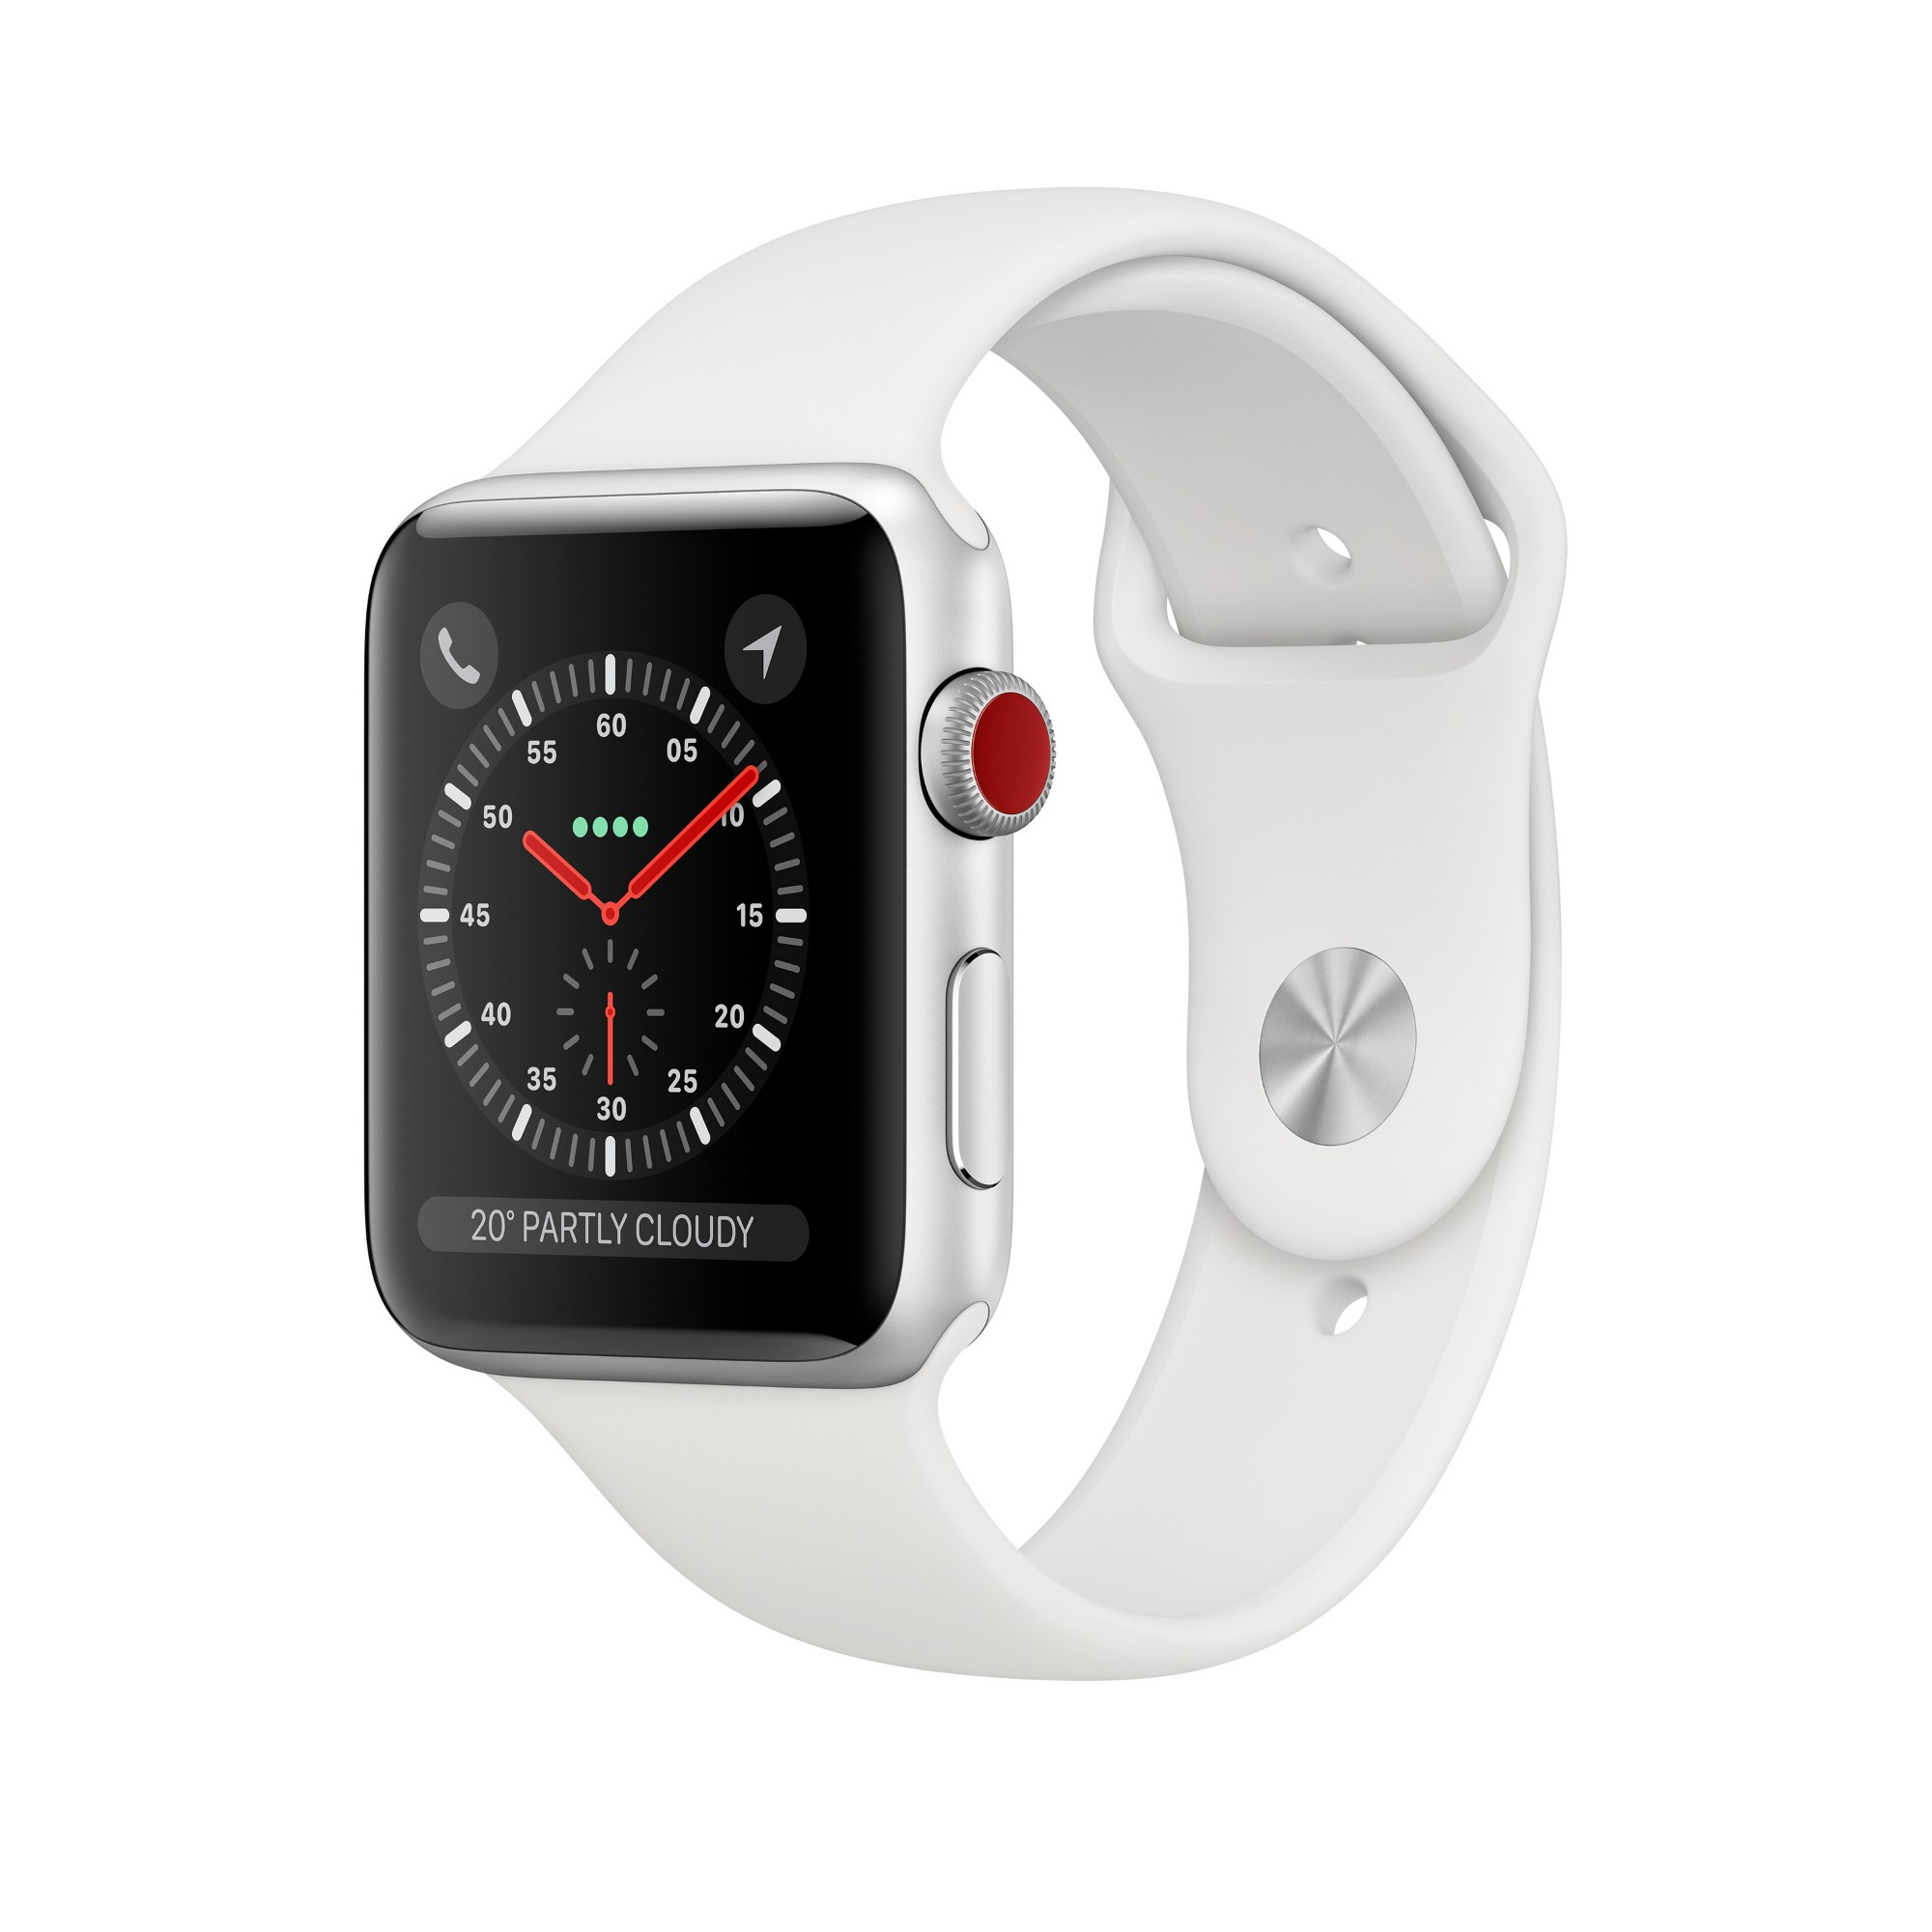 APPLE MTH12B/A WATCH SERIES 3 SMARTWATCH SILVER OLED CELLULAR GPS (SATELLITE)